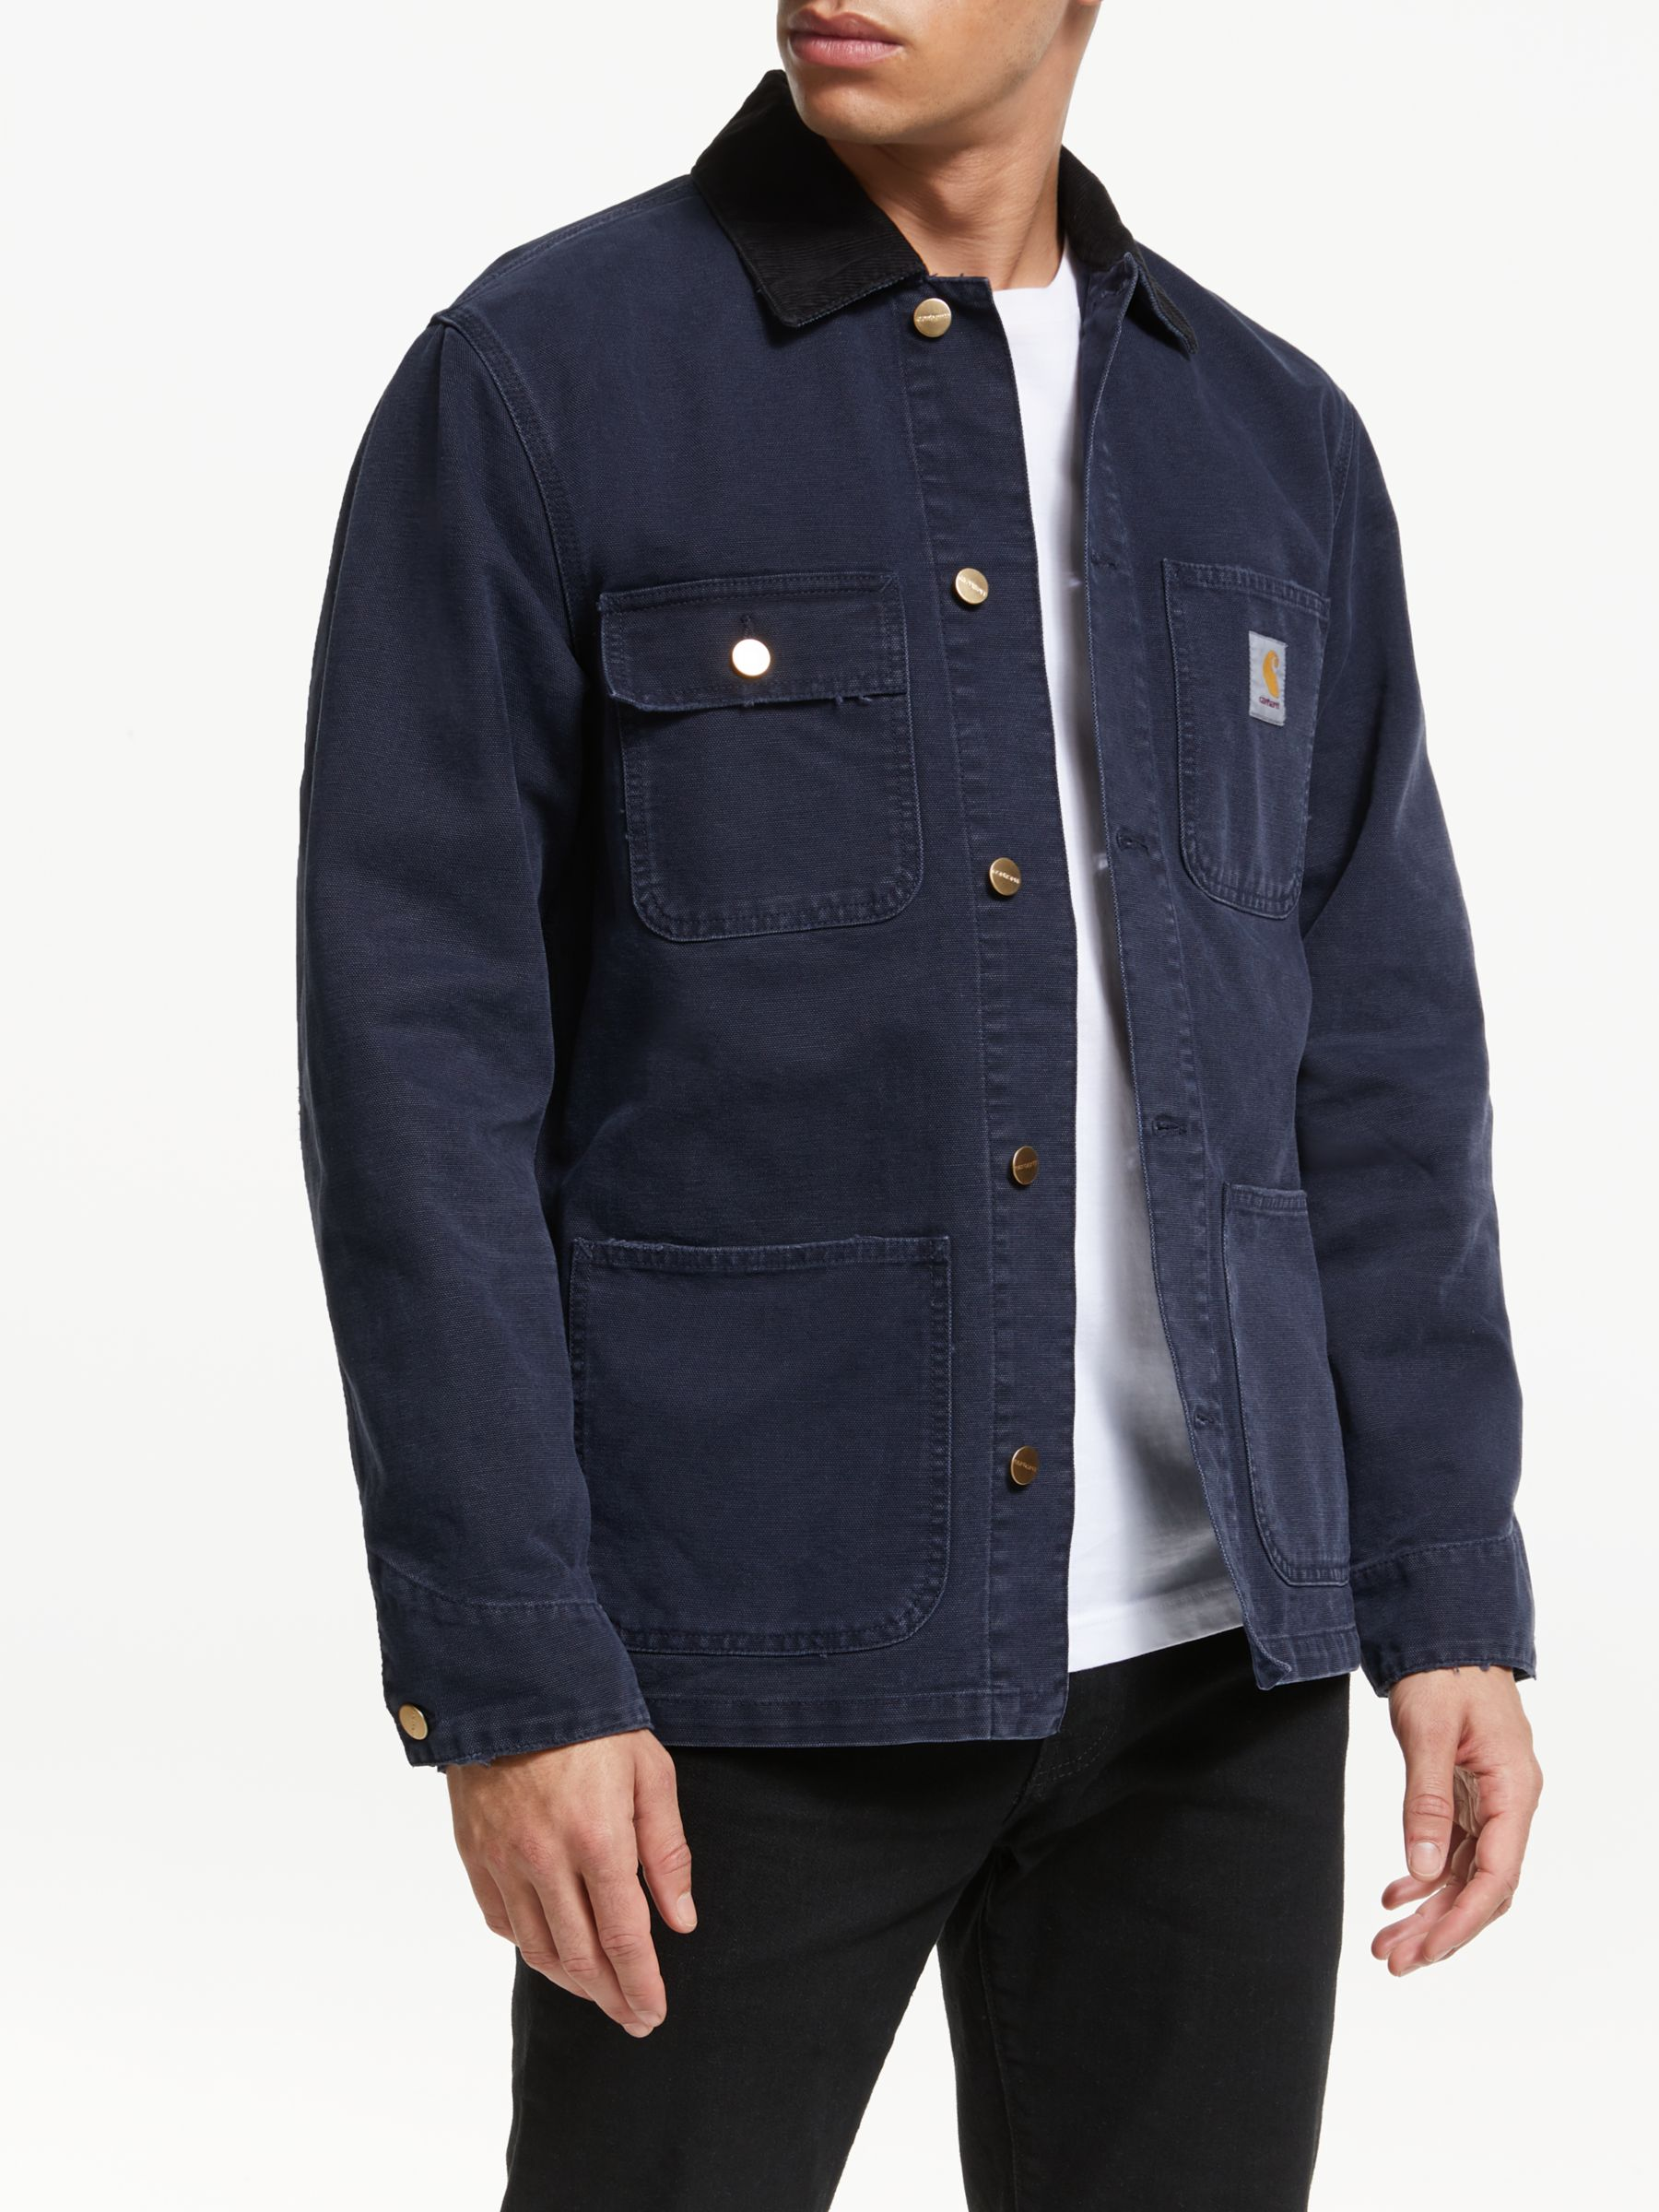 Carhartt WIP Carhartt WIP Michigan Coat, Dark Navy Aged